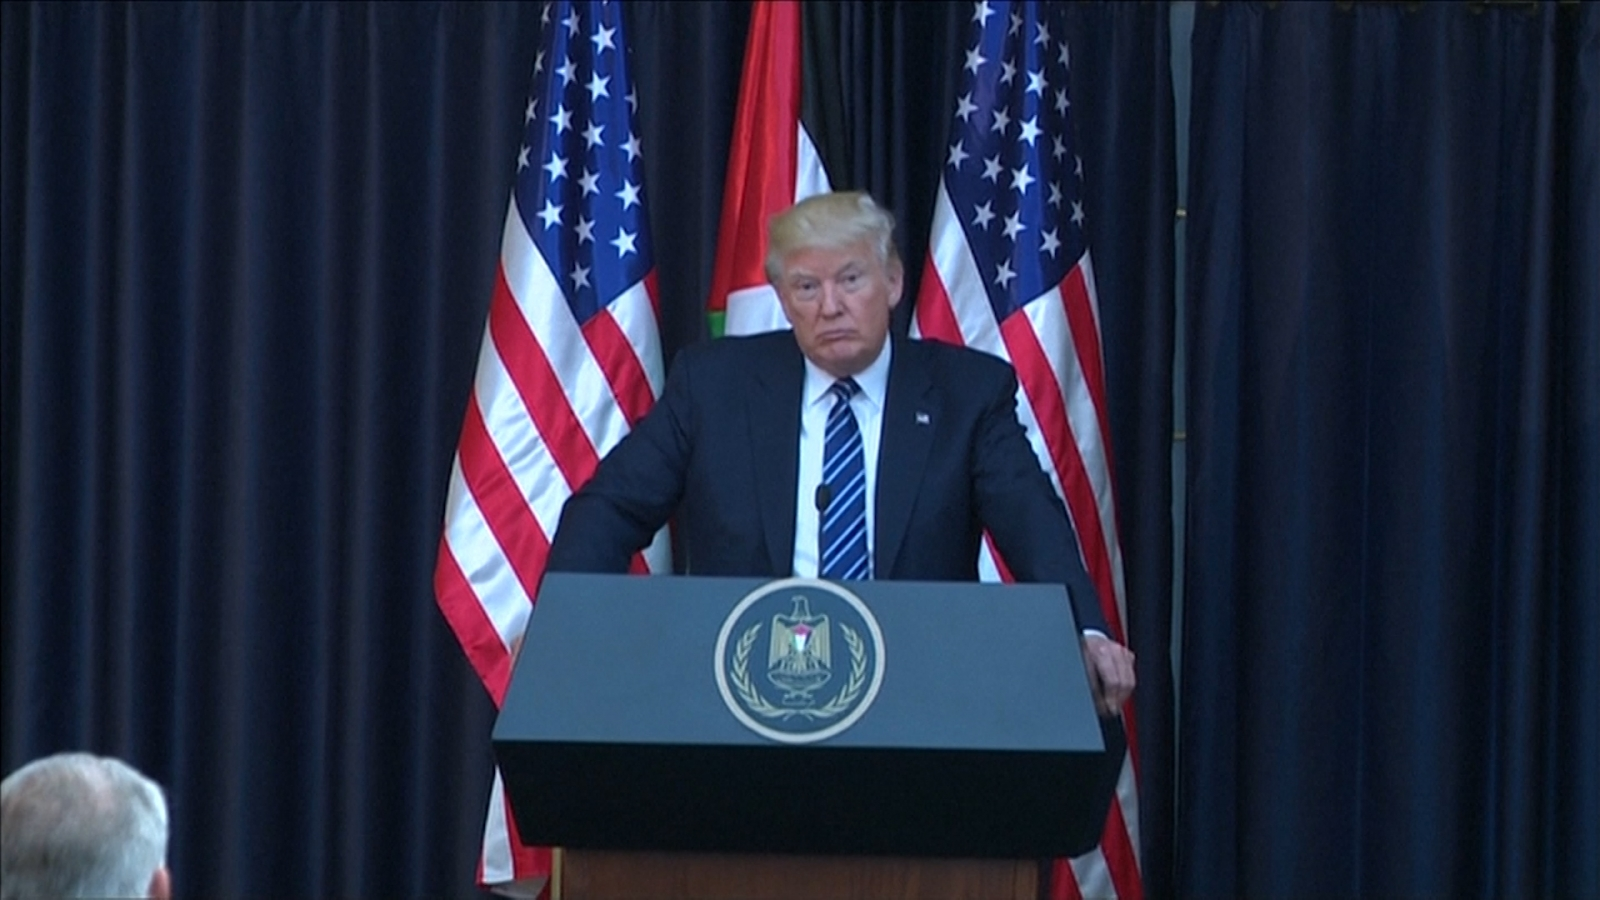 trump-says-perpetrators-of-manchester-attack-are-evil-losers